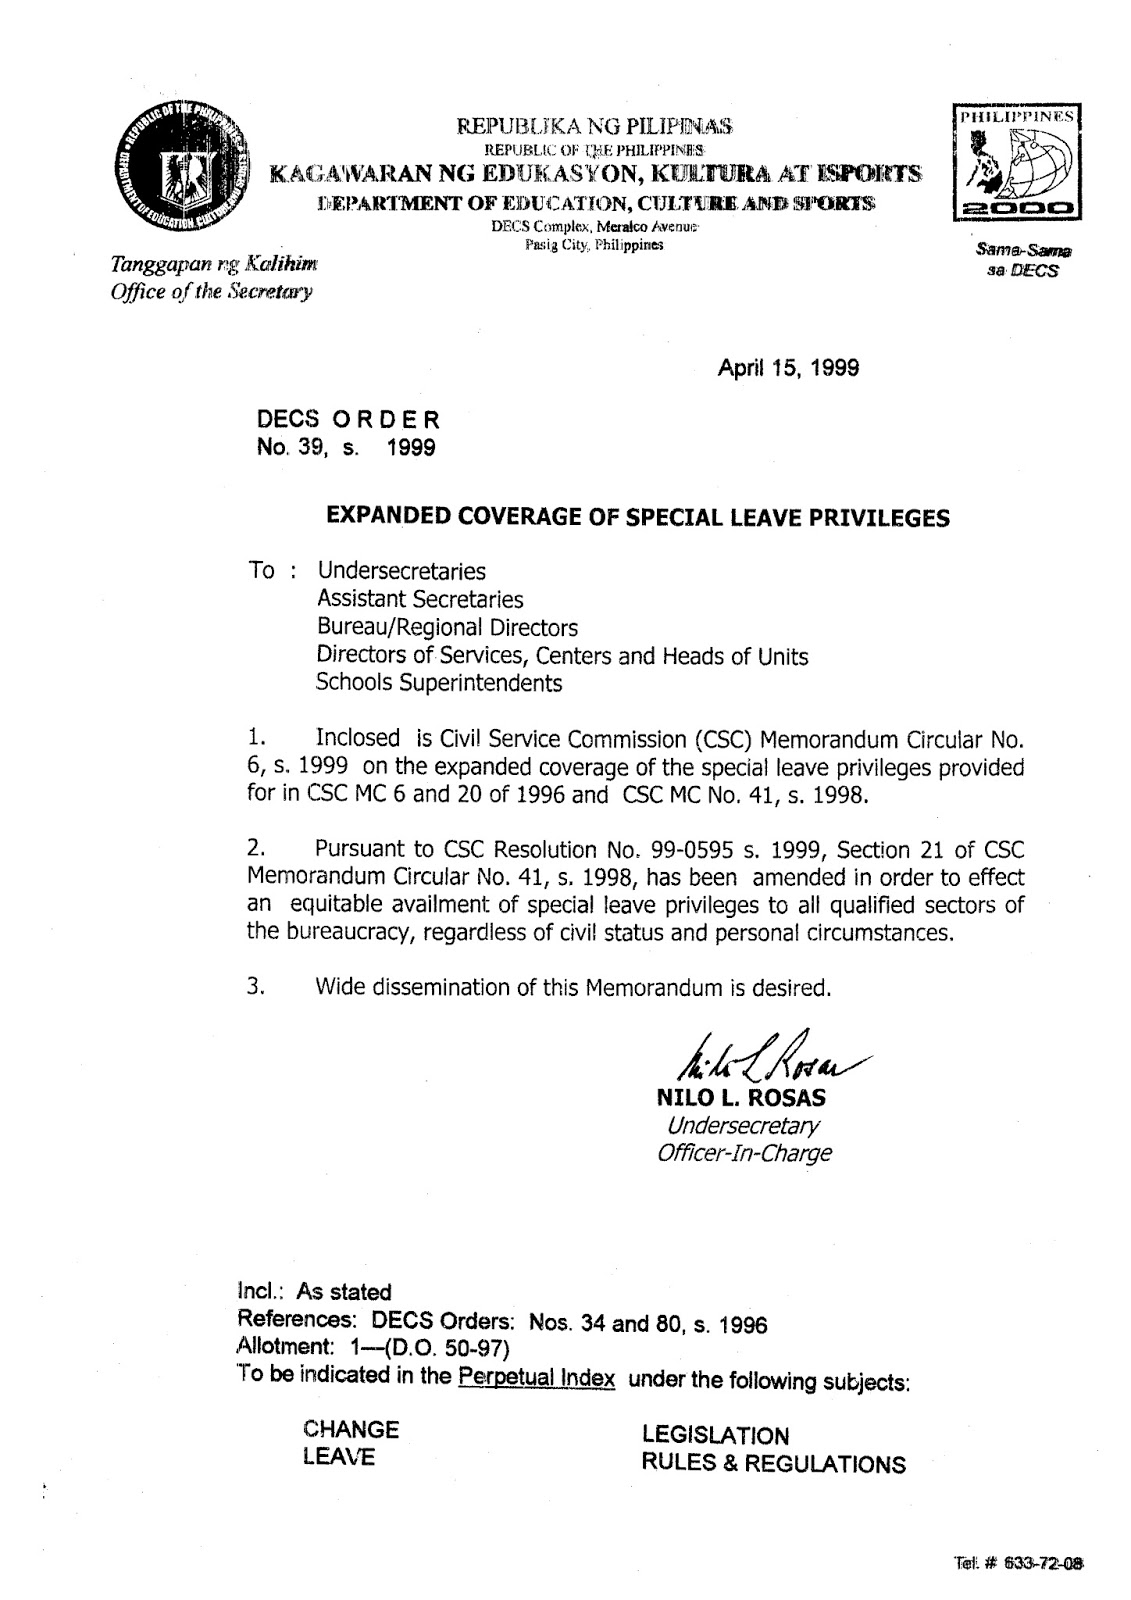 CSC Memo Circular 41 s 98 | Sick Leave | Parental Leave